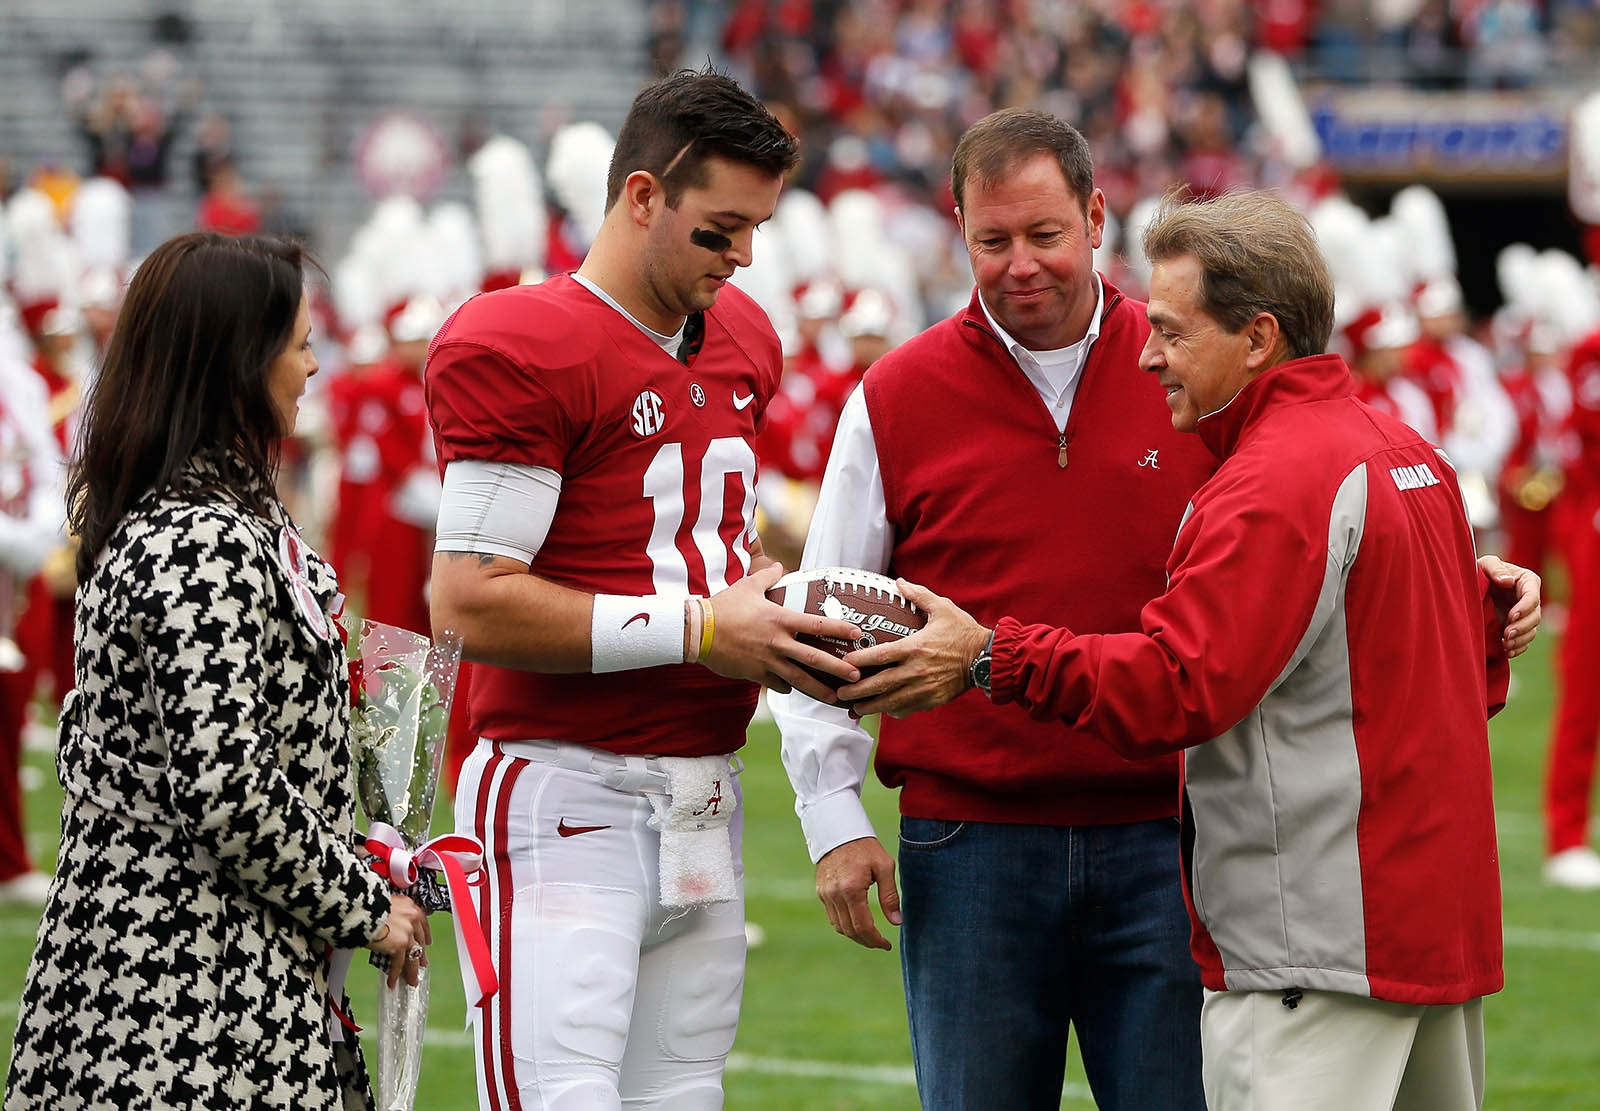 Nov. 23, 2013: AJ McCarron (10) of the Alabama Crimson Tide receives a honorary football from head coach Nick Saban during a pregame ceremony at Bryant-Denny Stadium in Tuscaloosa, Ala.